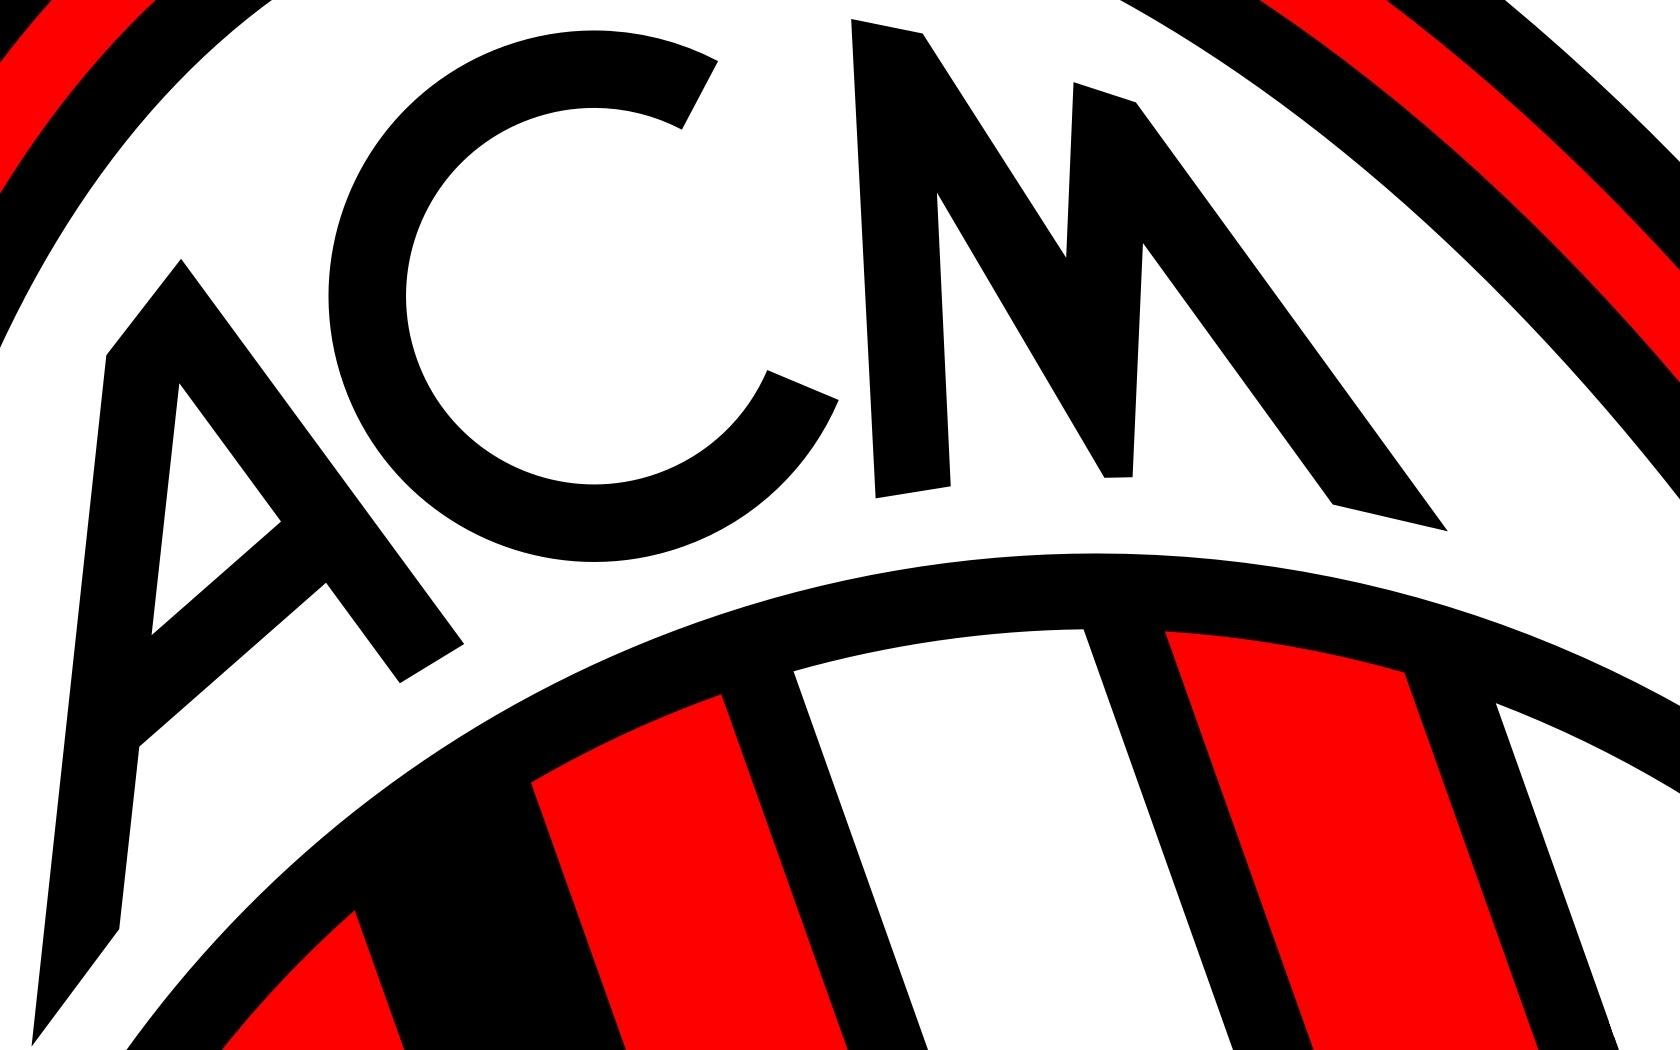 Hd wallpaper ac milan - Ac Milan Wallpaper Hd Wide